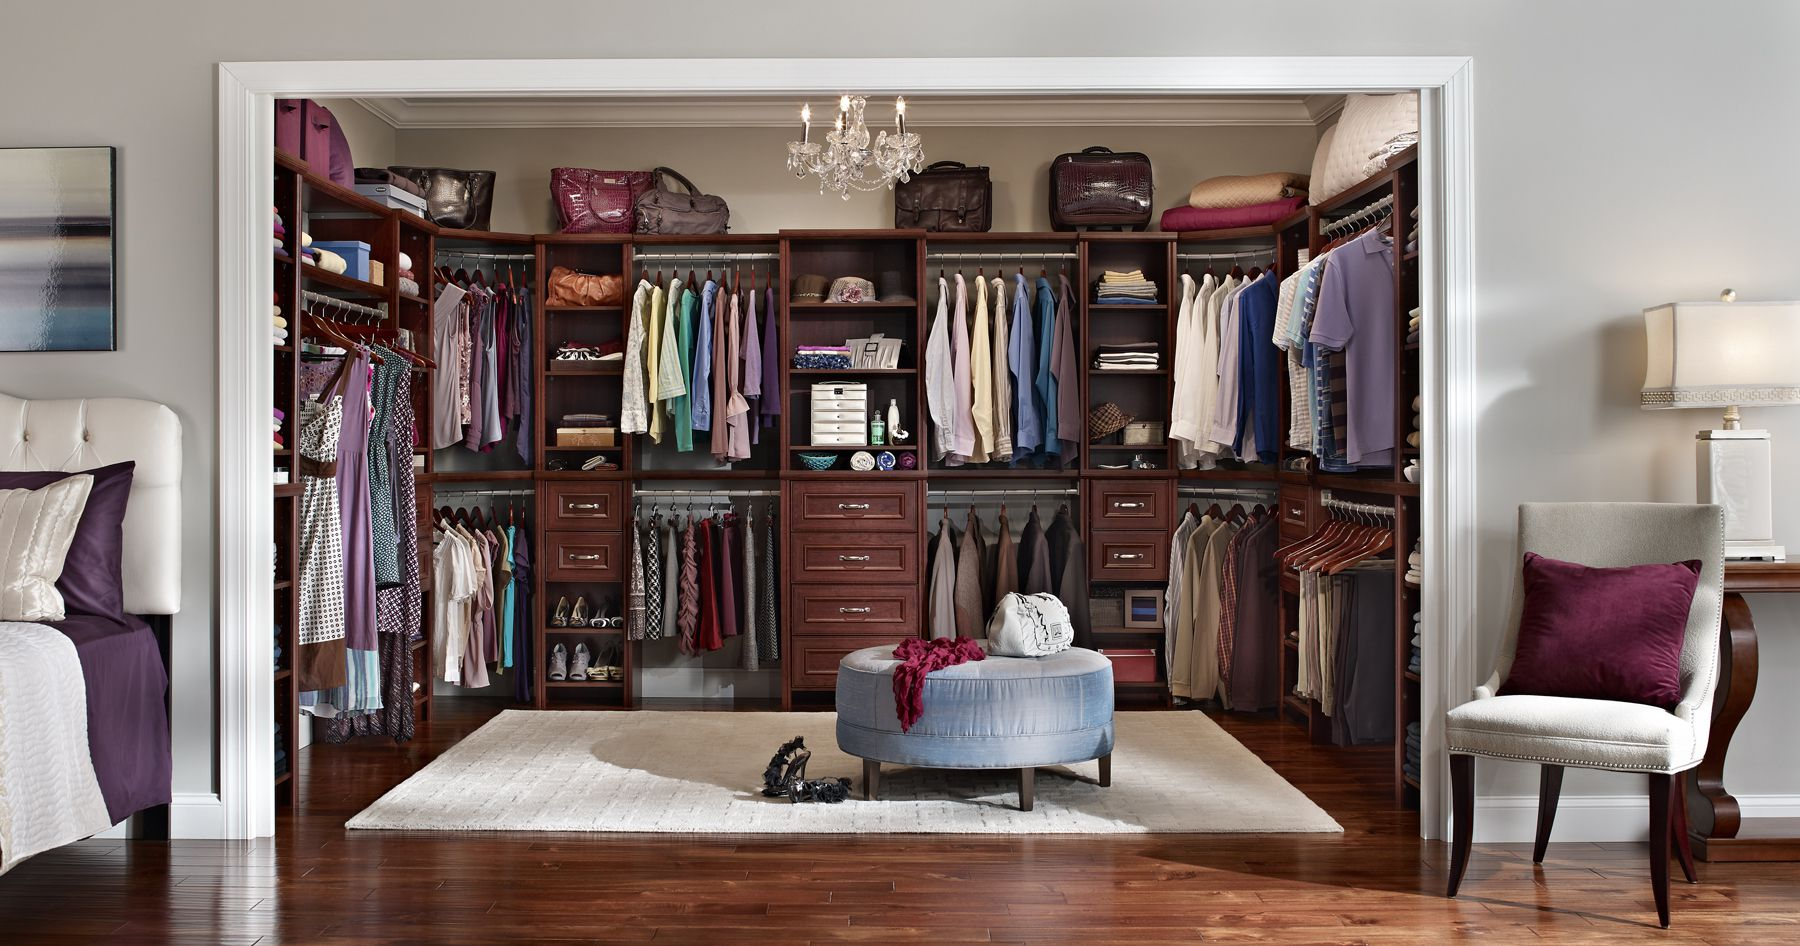 closet organizer ideas. Plain Closet Large Closet Organizers Ideas With Wooden Storages Also Hanging Clothes Throughout Organizer